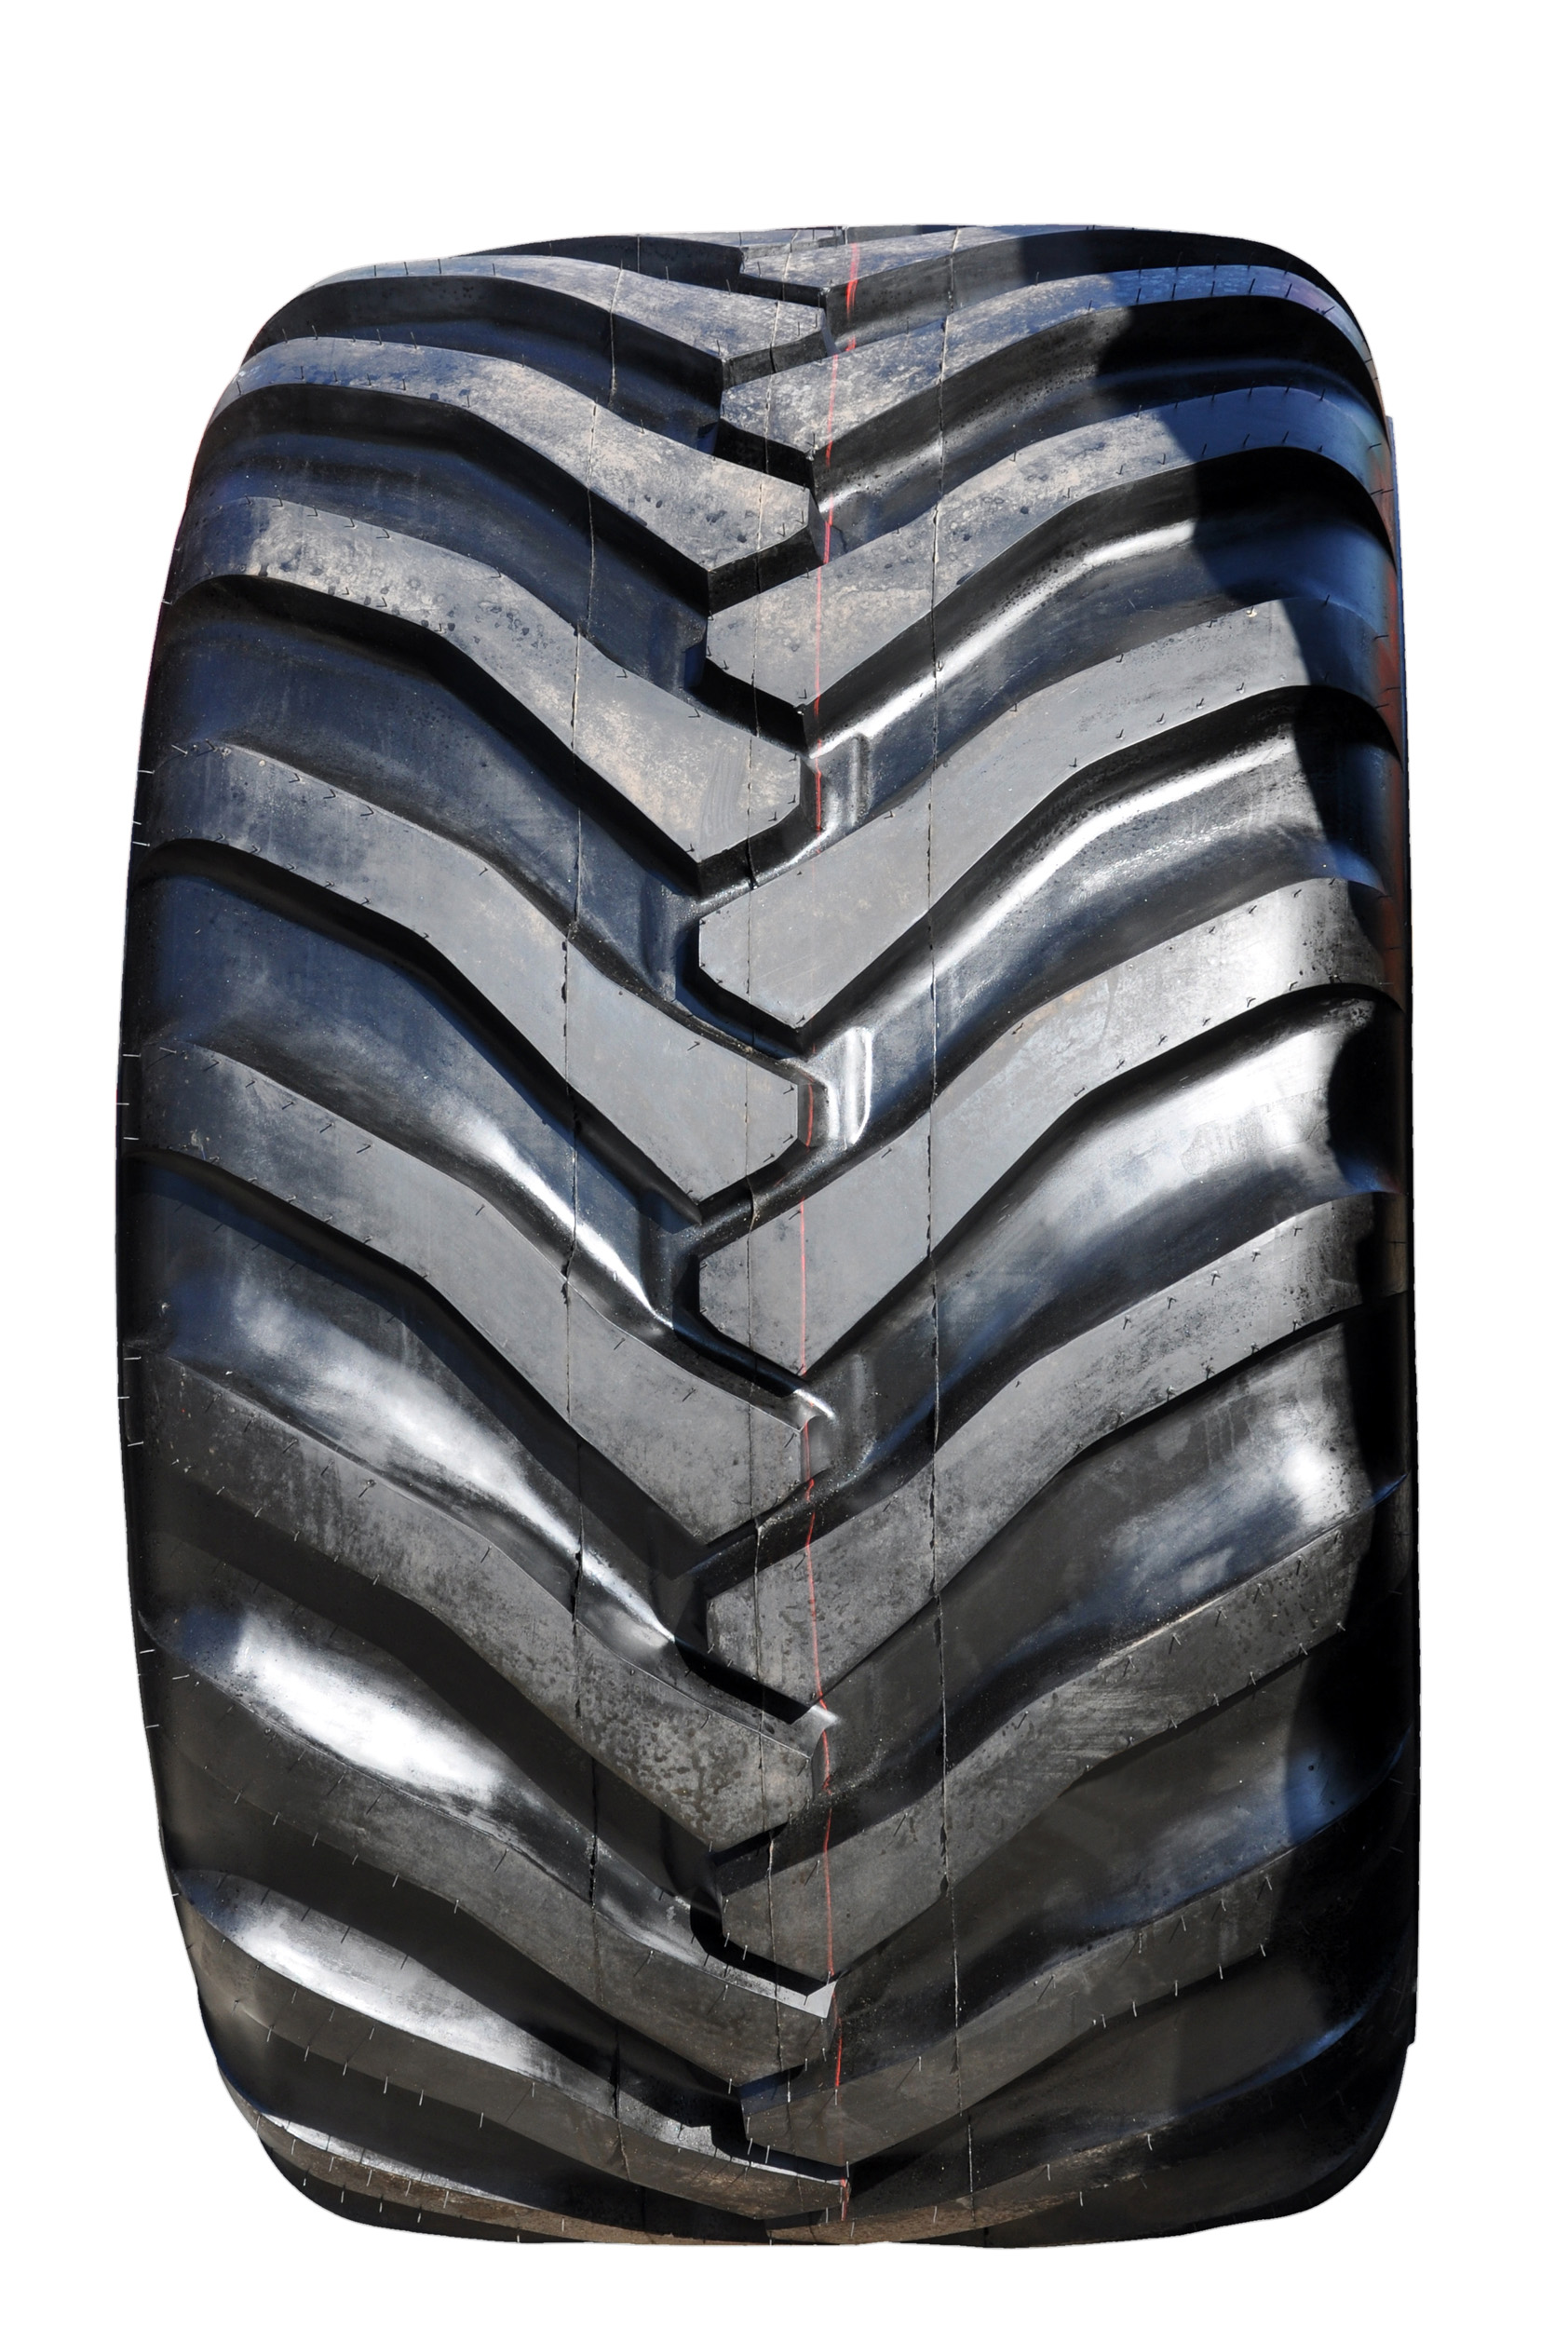 Tractor tyre, Agriculture, Protector, Wheels, Wheel, HQ Photo